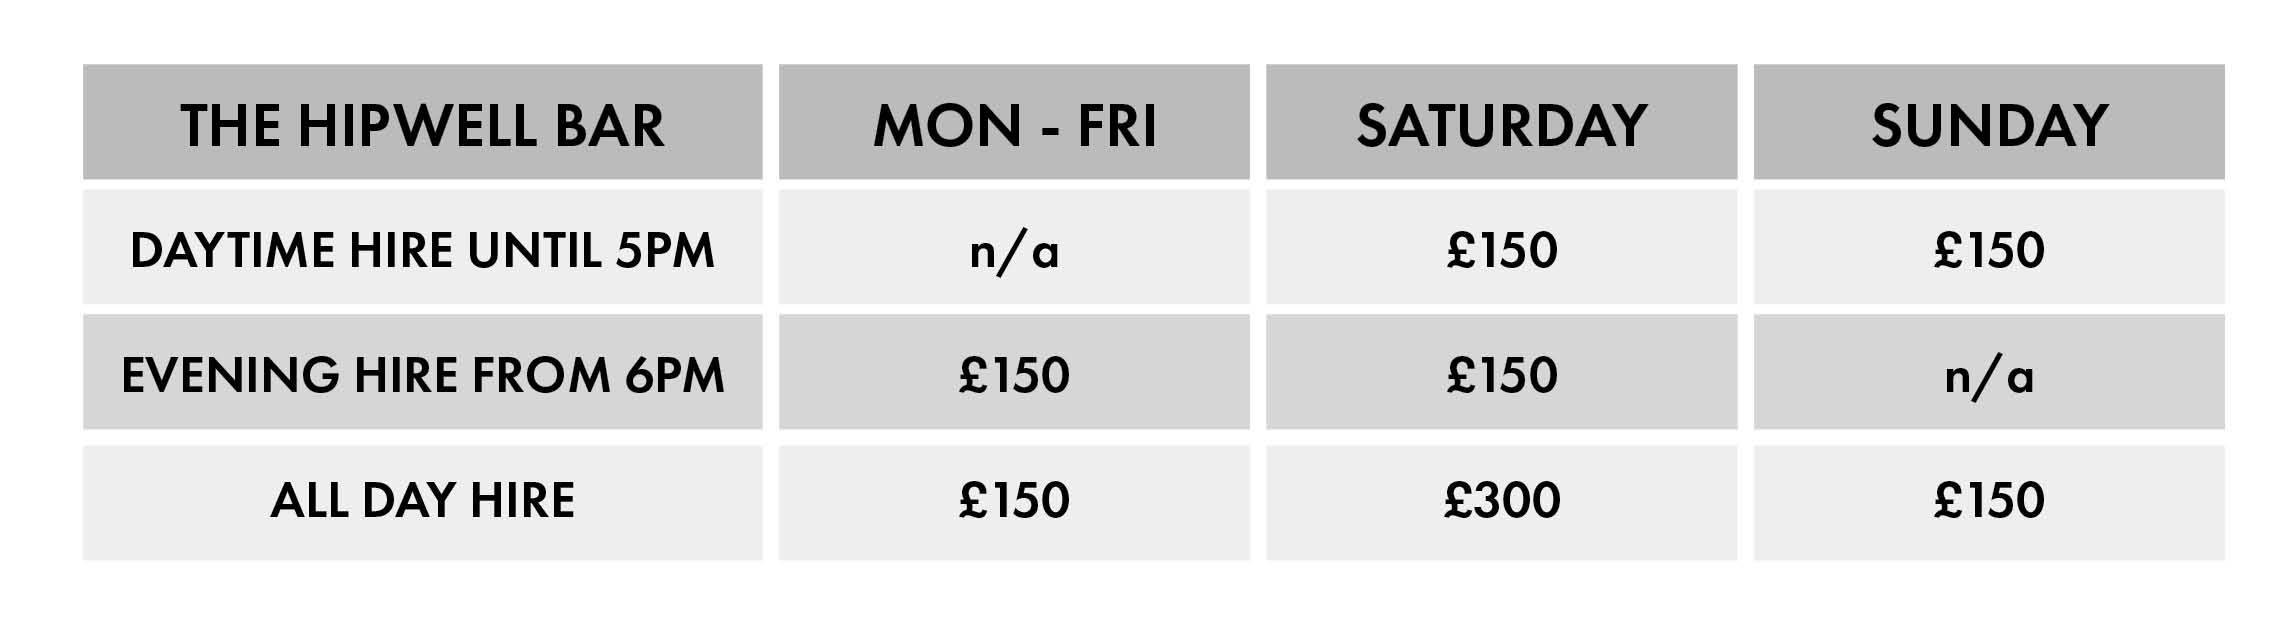 CHT Room Hire Prices.jpg